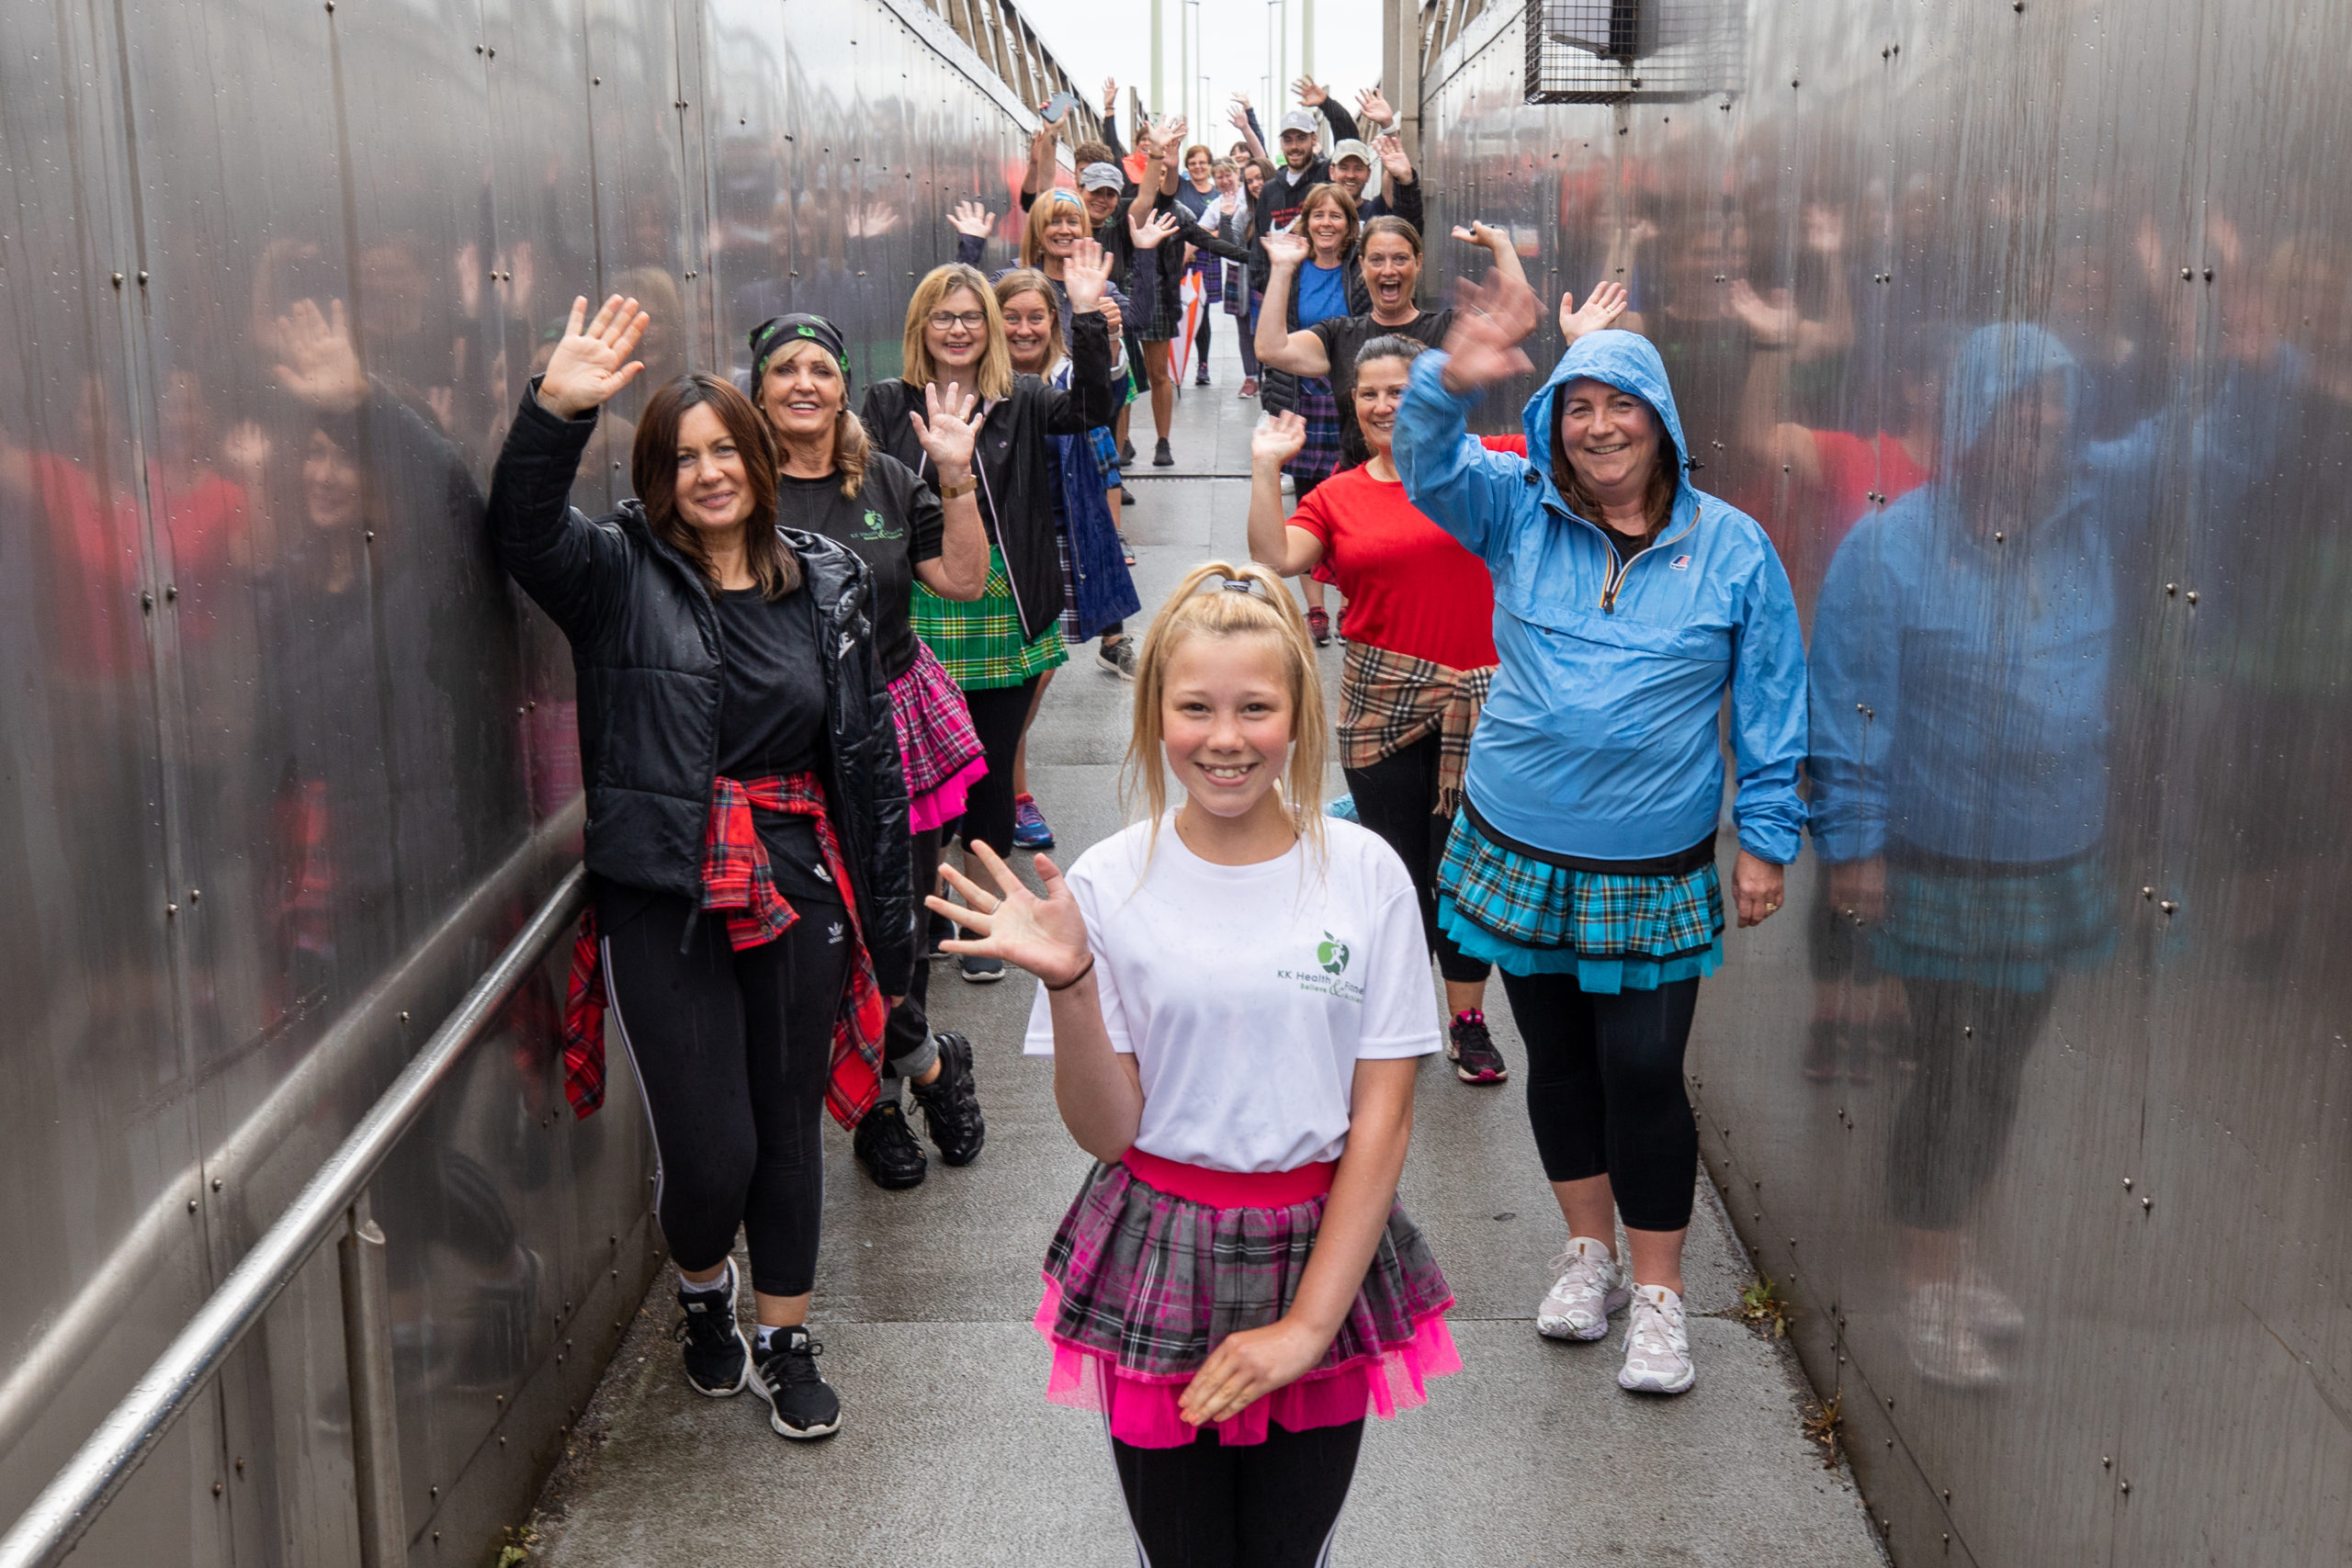 Picture shows; the team members in their kilts ready to take the challenges that Kelly Kyle has planned - with Kelly's daughter Erin in the foreground.